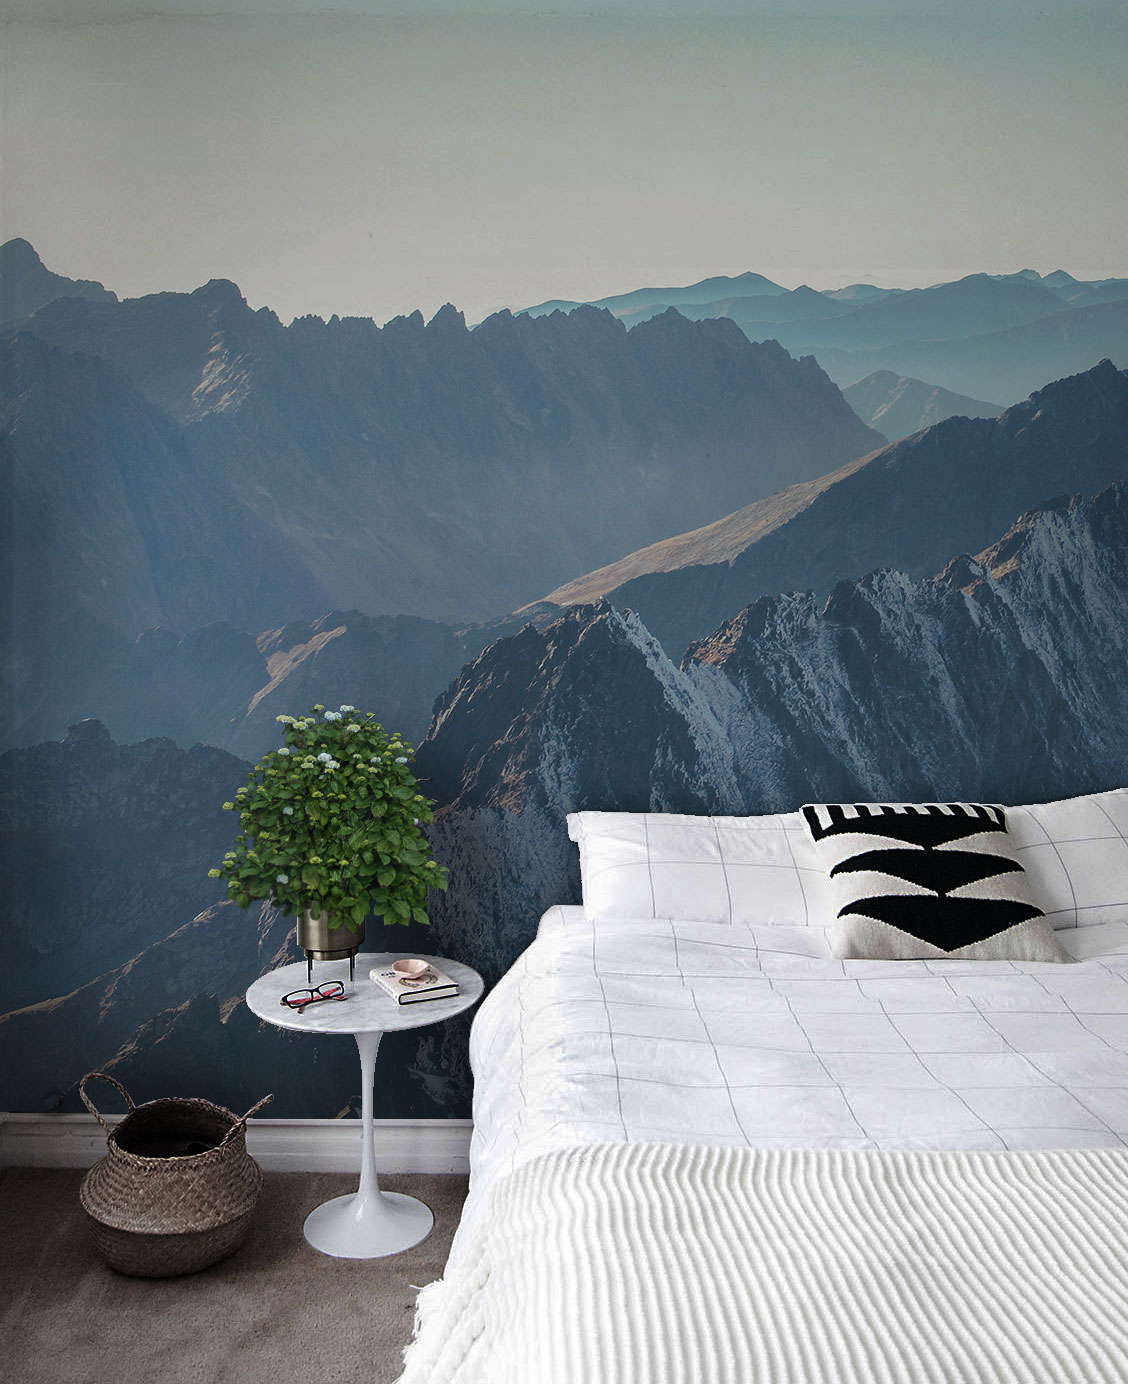 Popular Wallpaper Mountain Bedroom - bedroom_wall_map_nature6  Pictures_464516.jpg